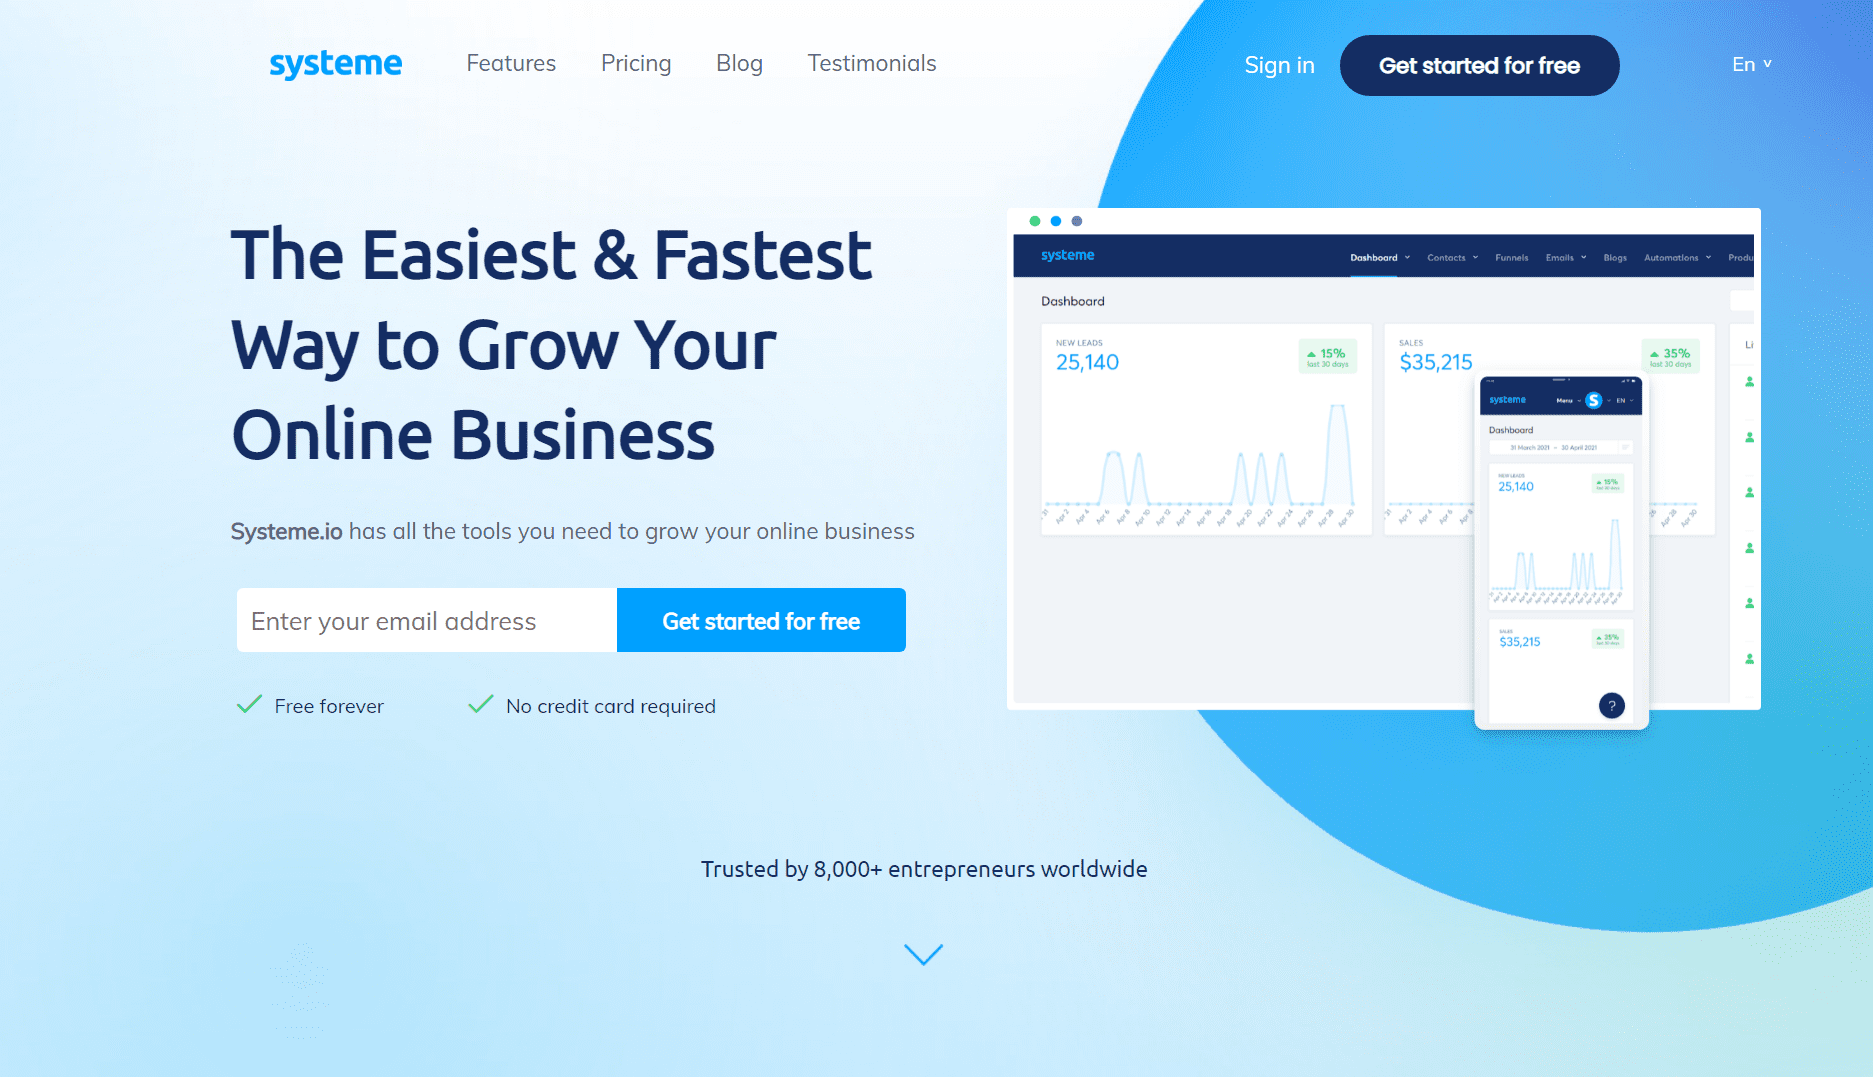 Systeme.io's home page